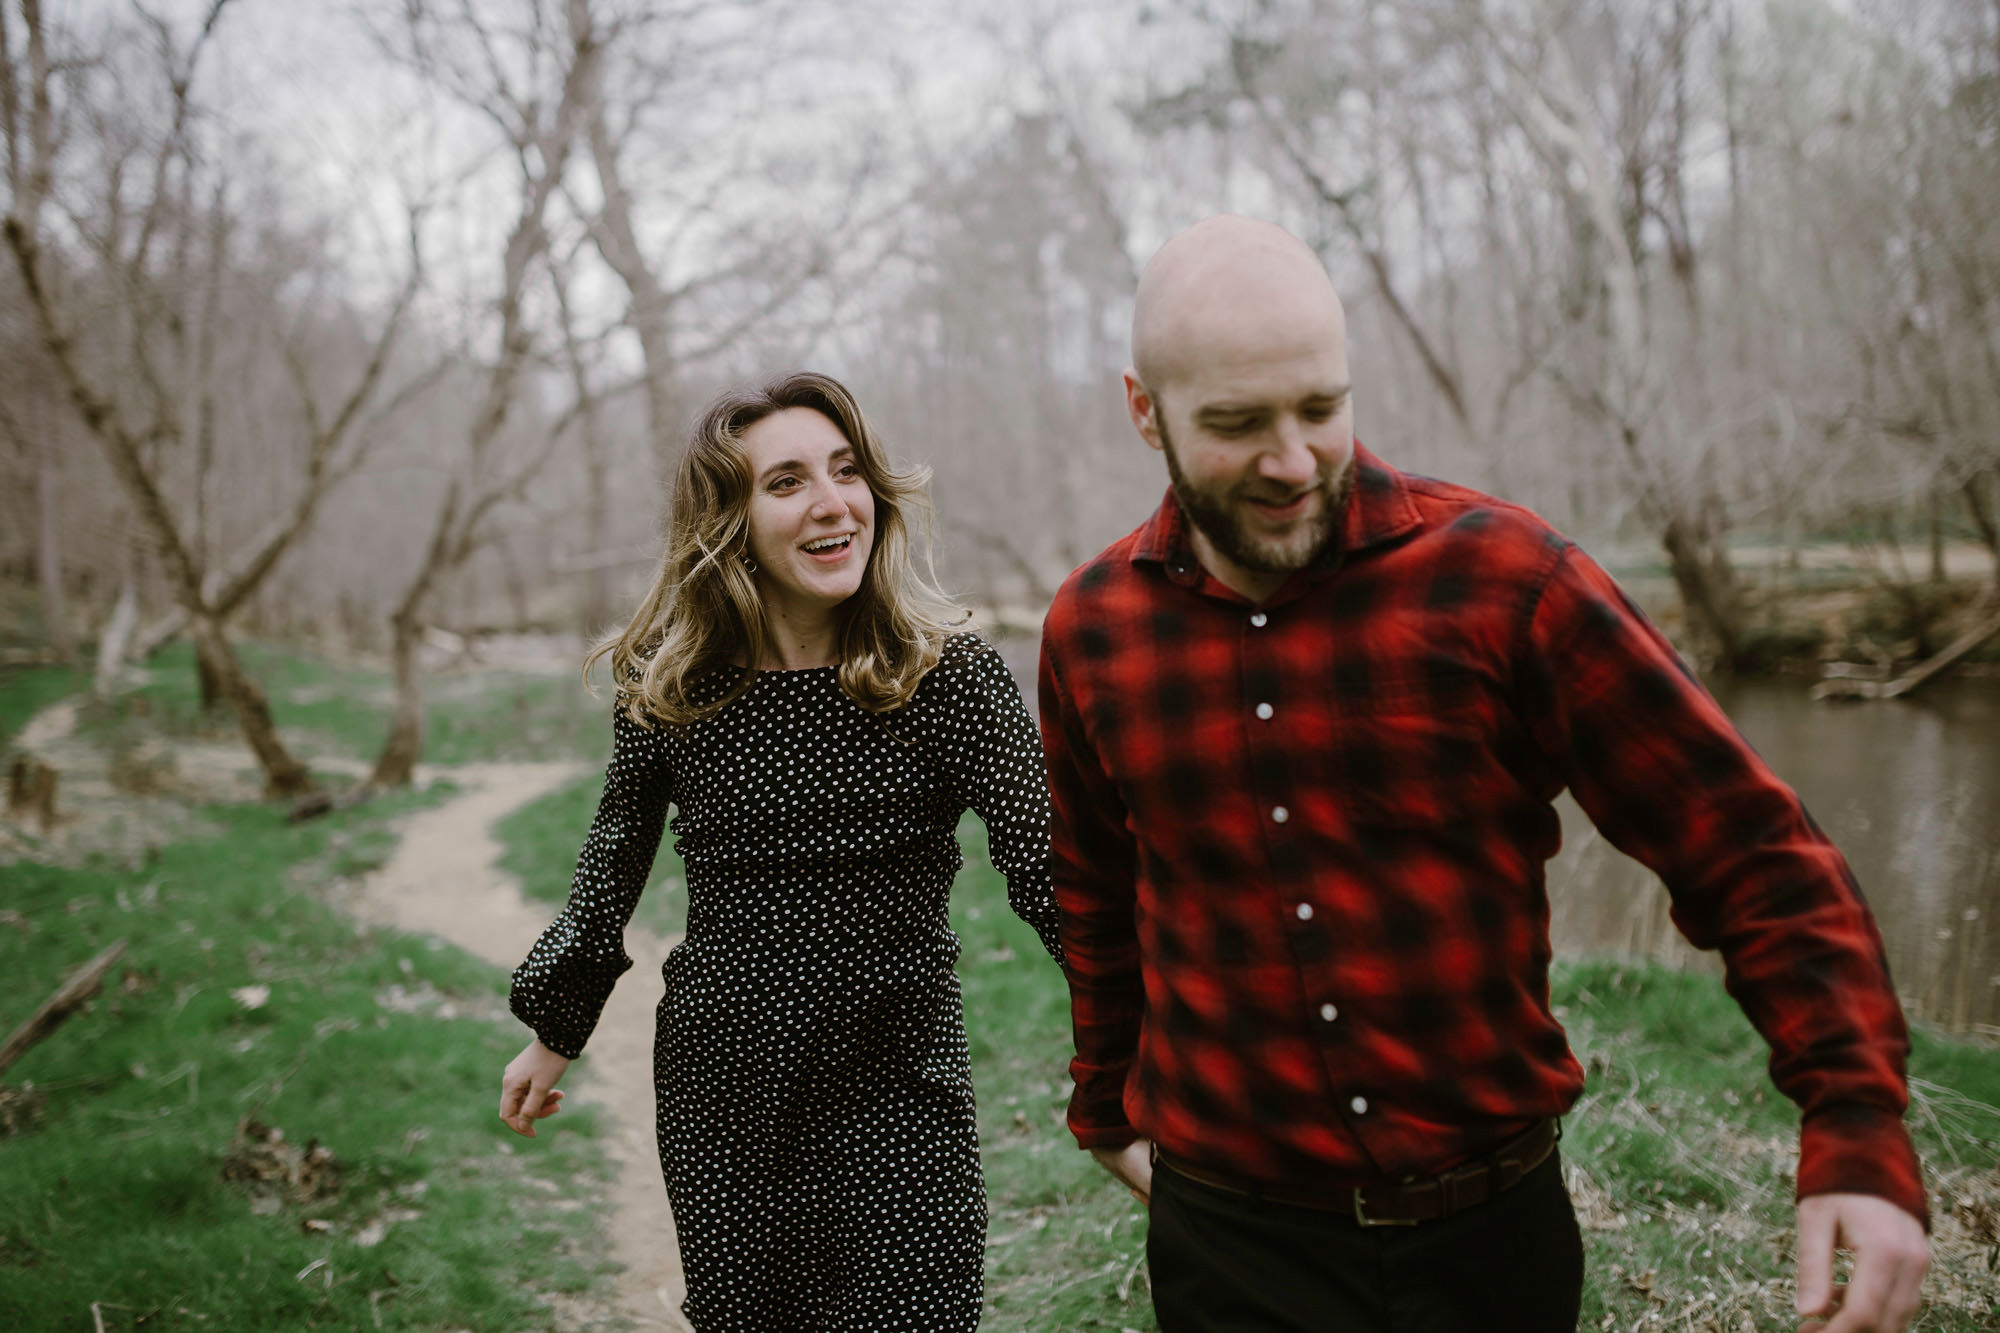 Eno State Park Engagement Session